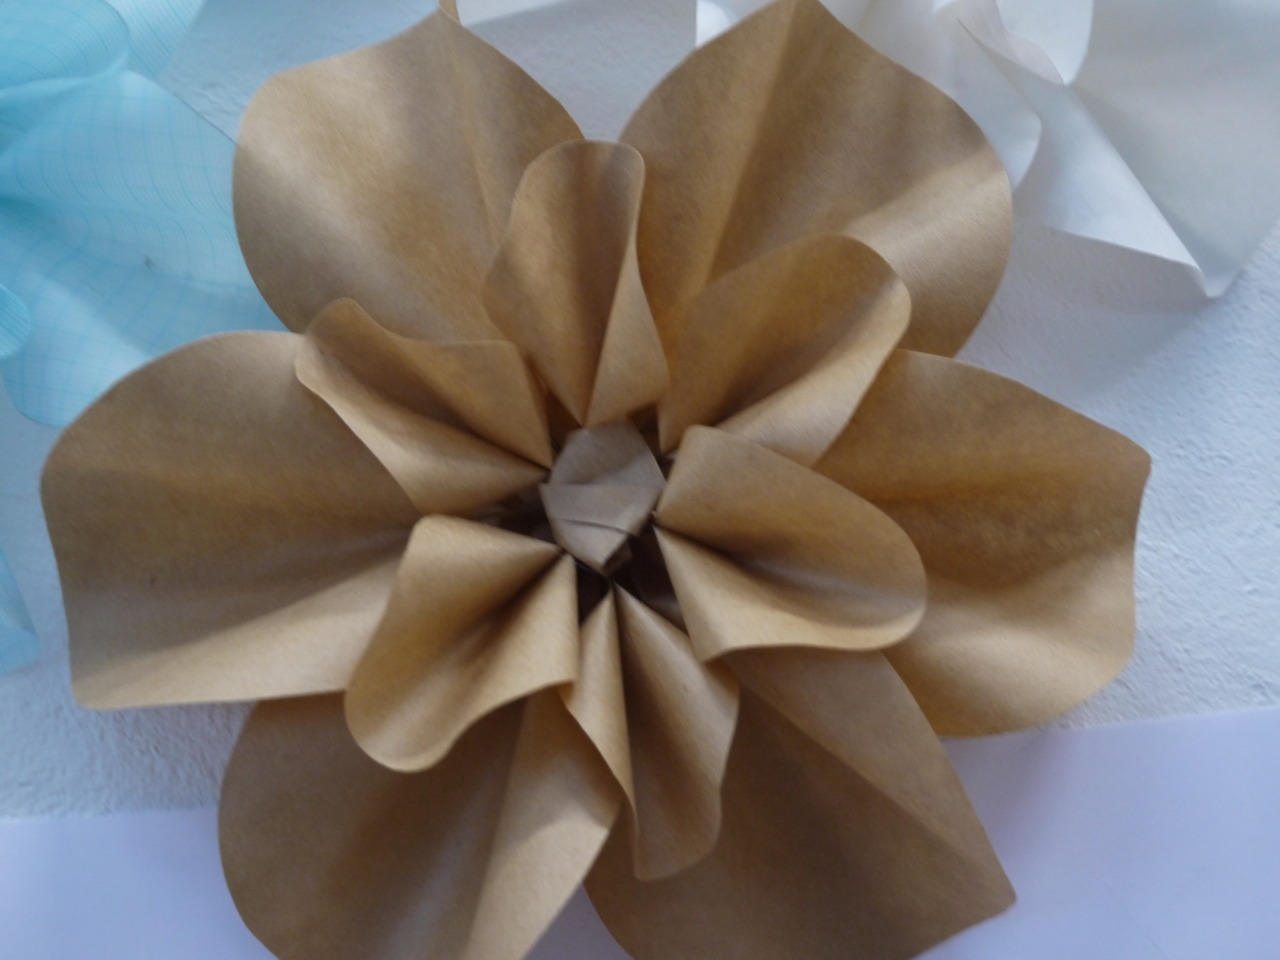 Some paper flowers I am making, these will be made interactive with my next Arduino venture!